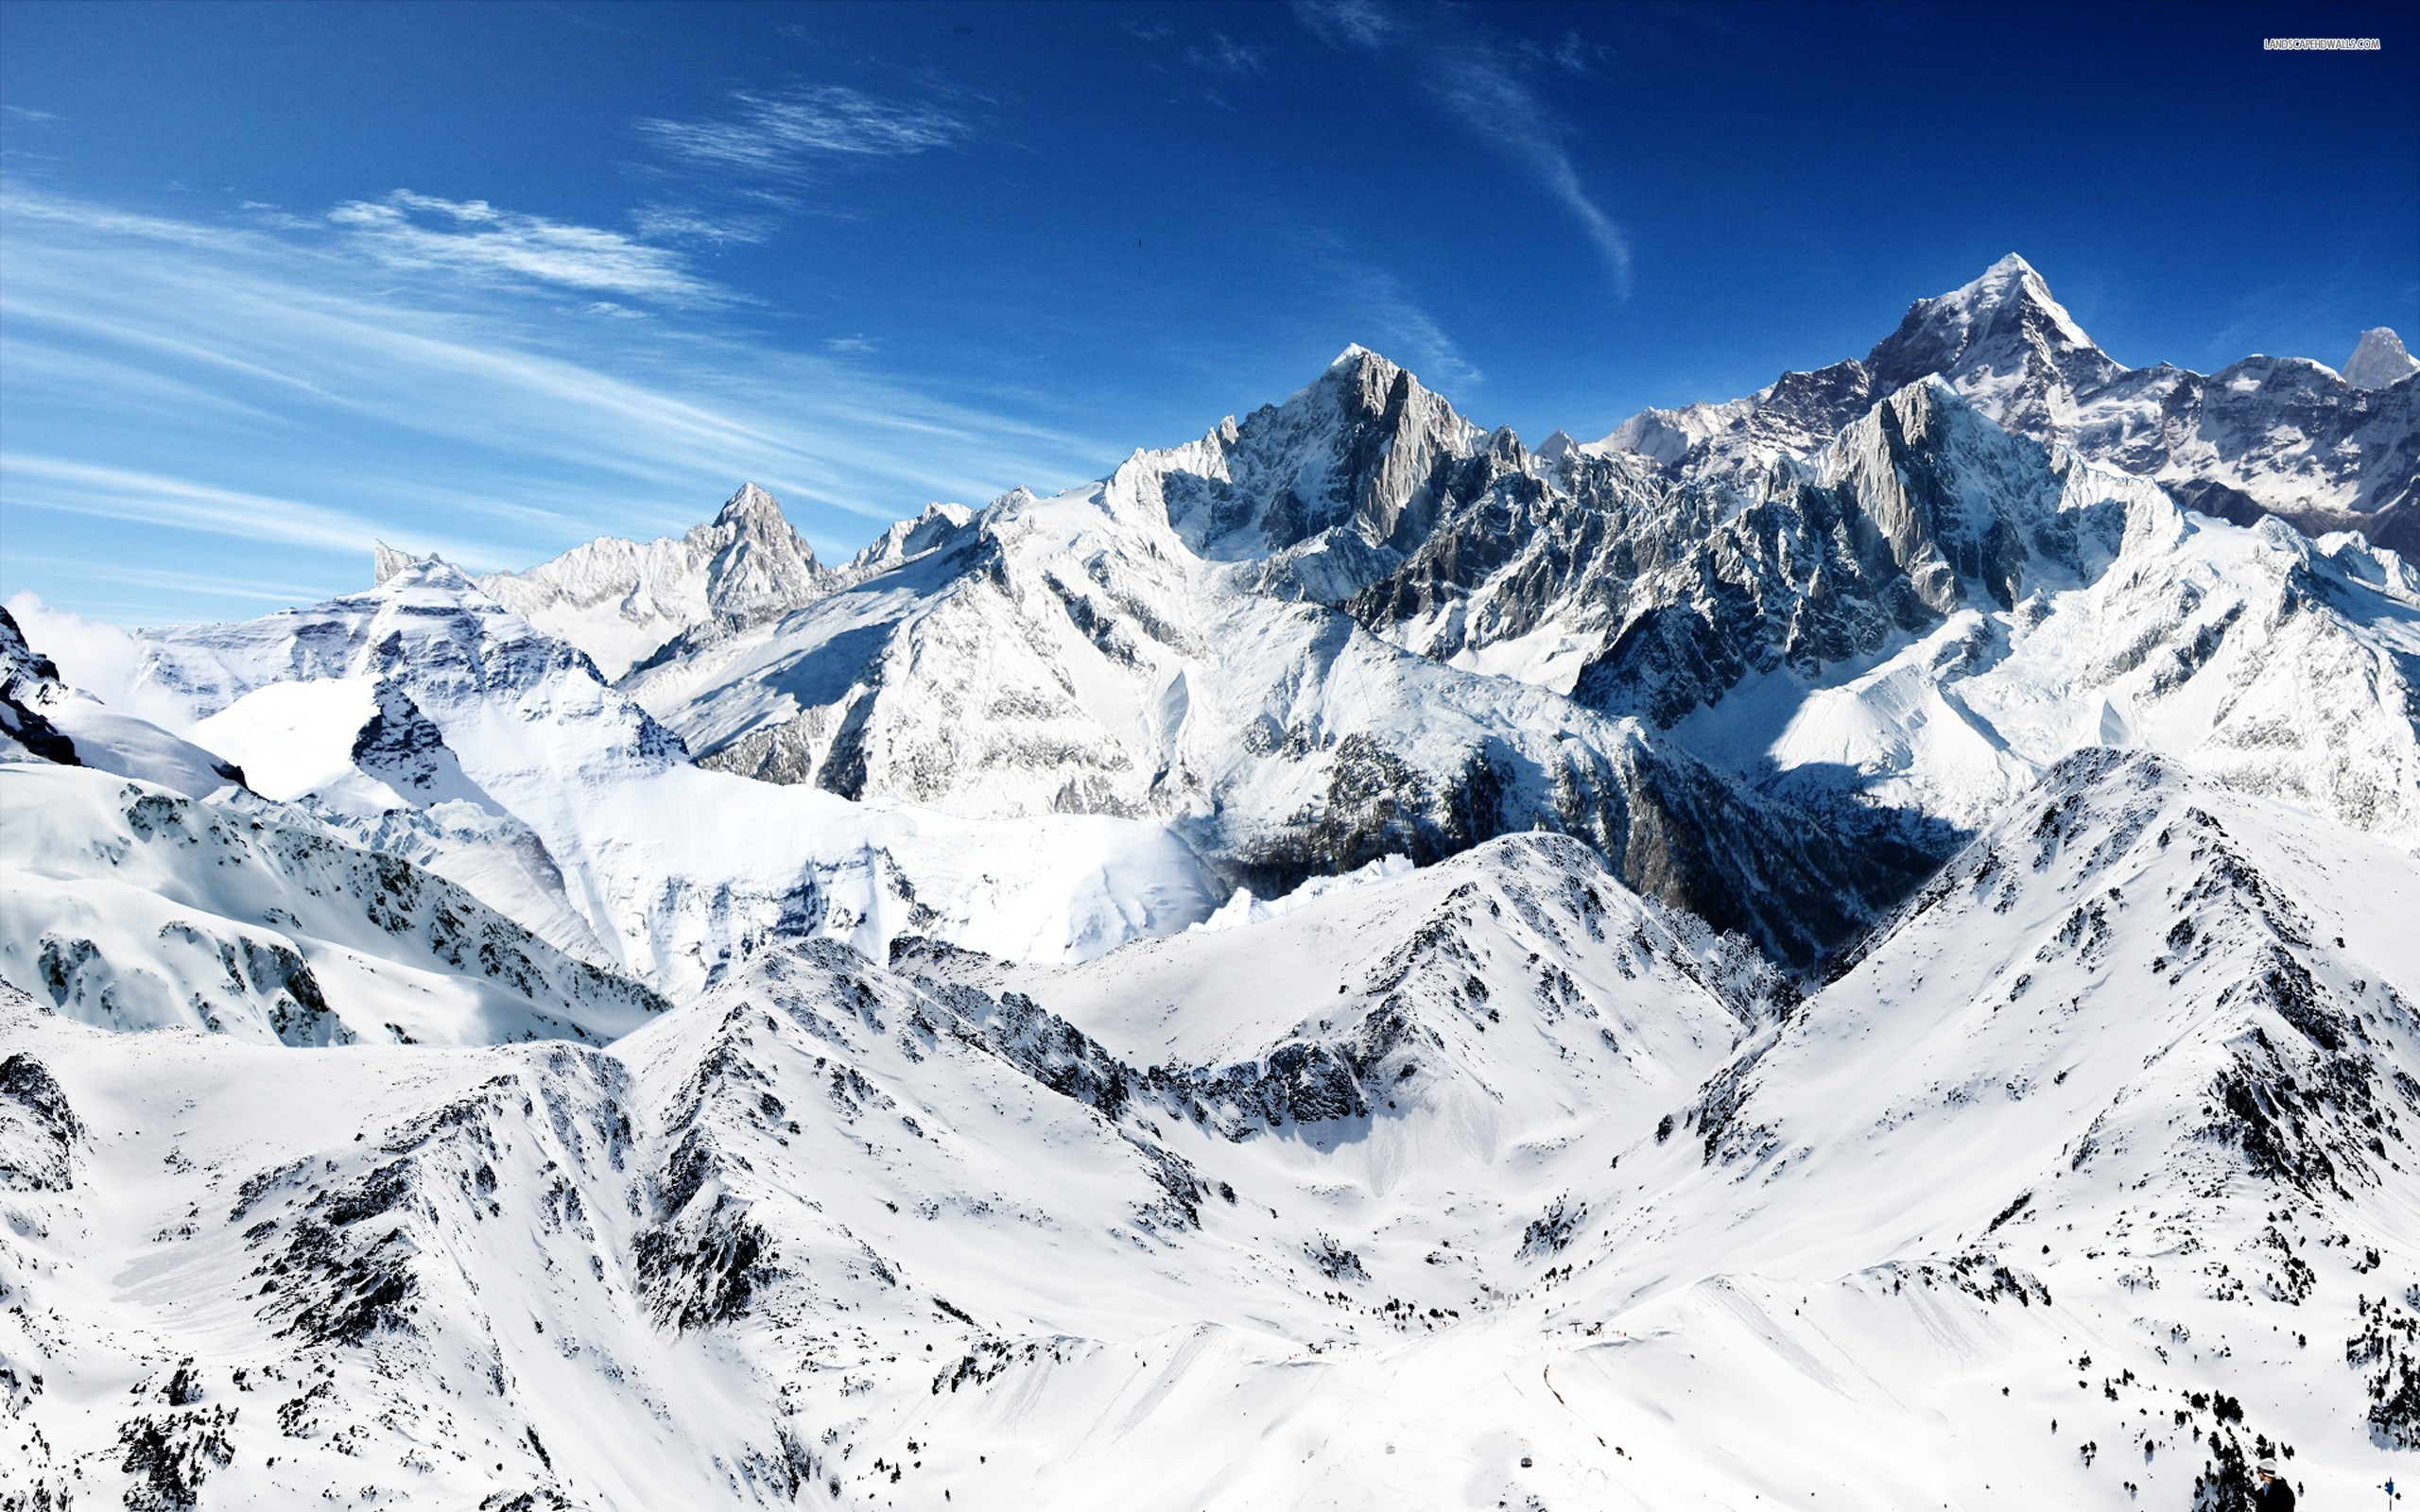 Beautiful Snow Mountain Wallpaper for Desktop